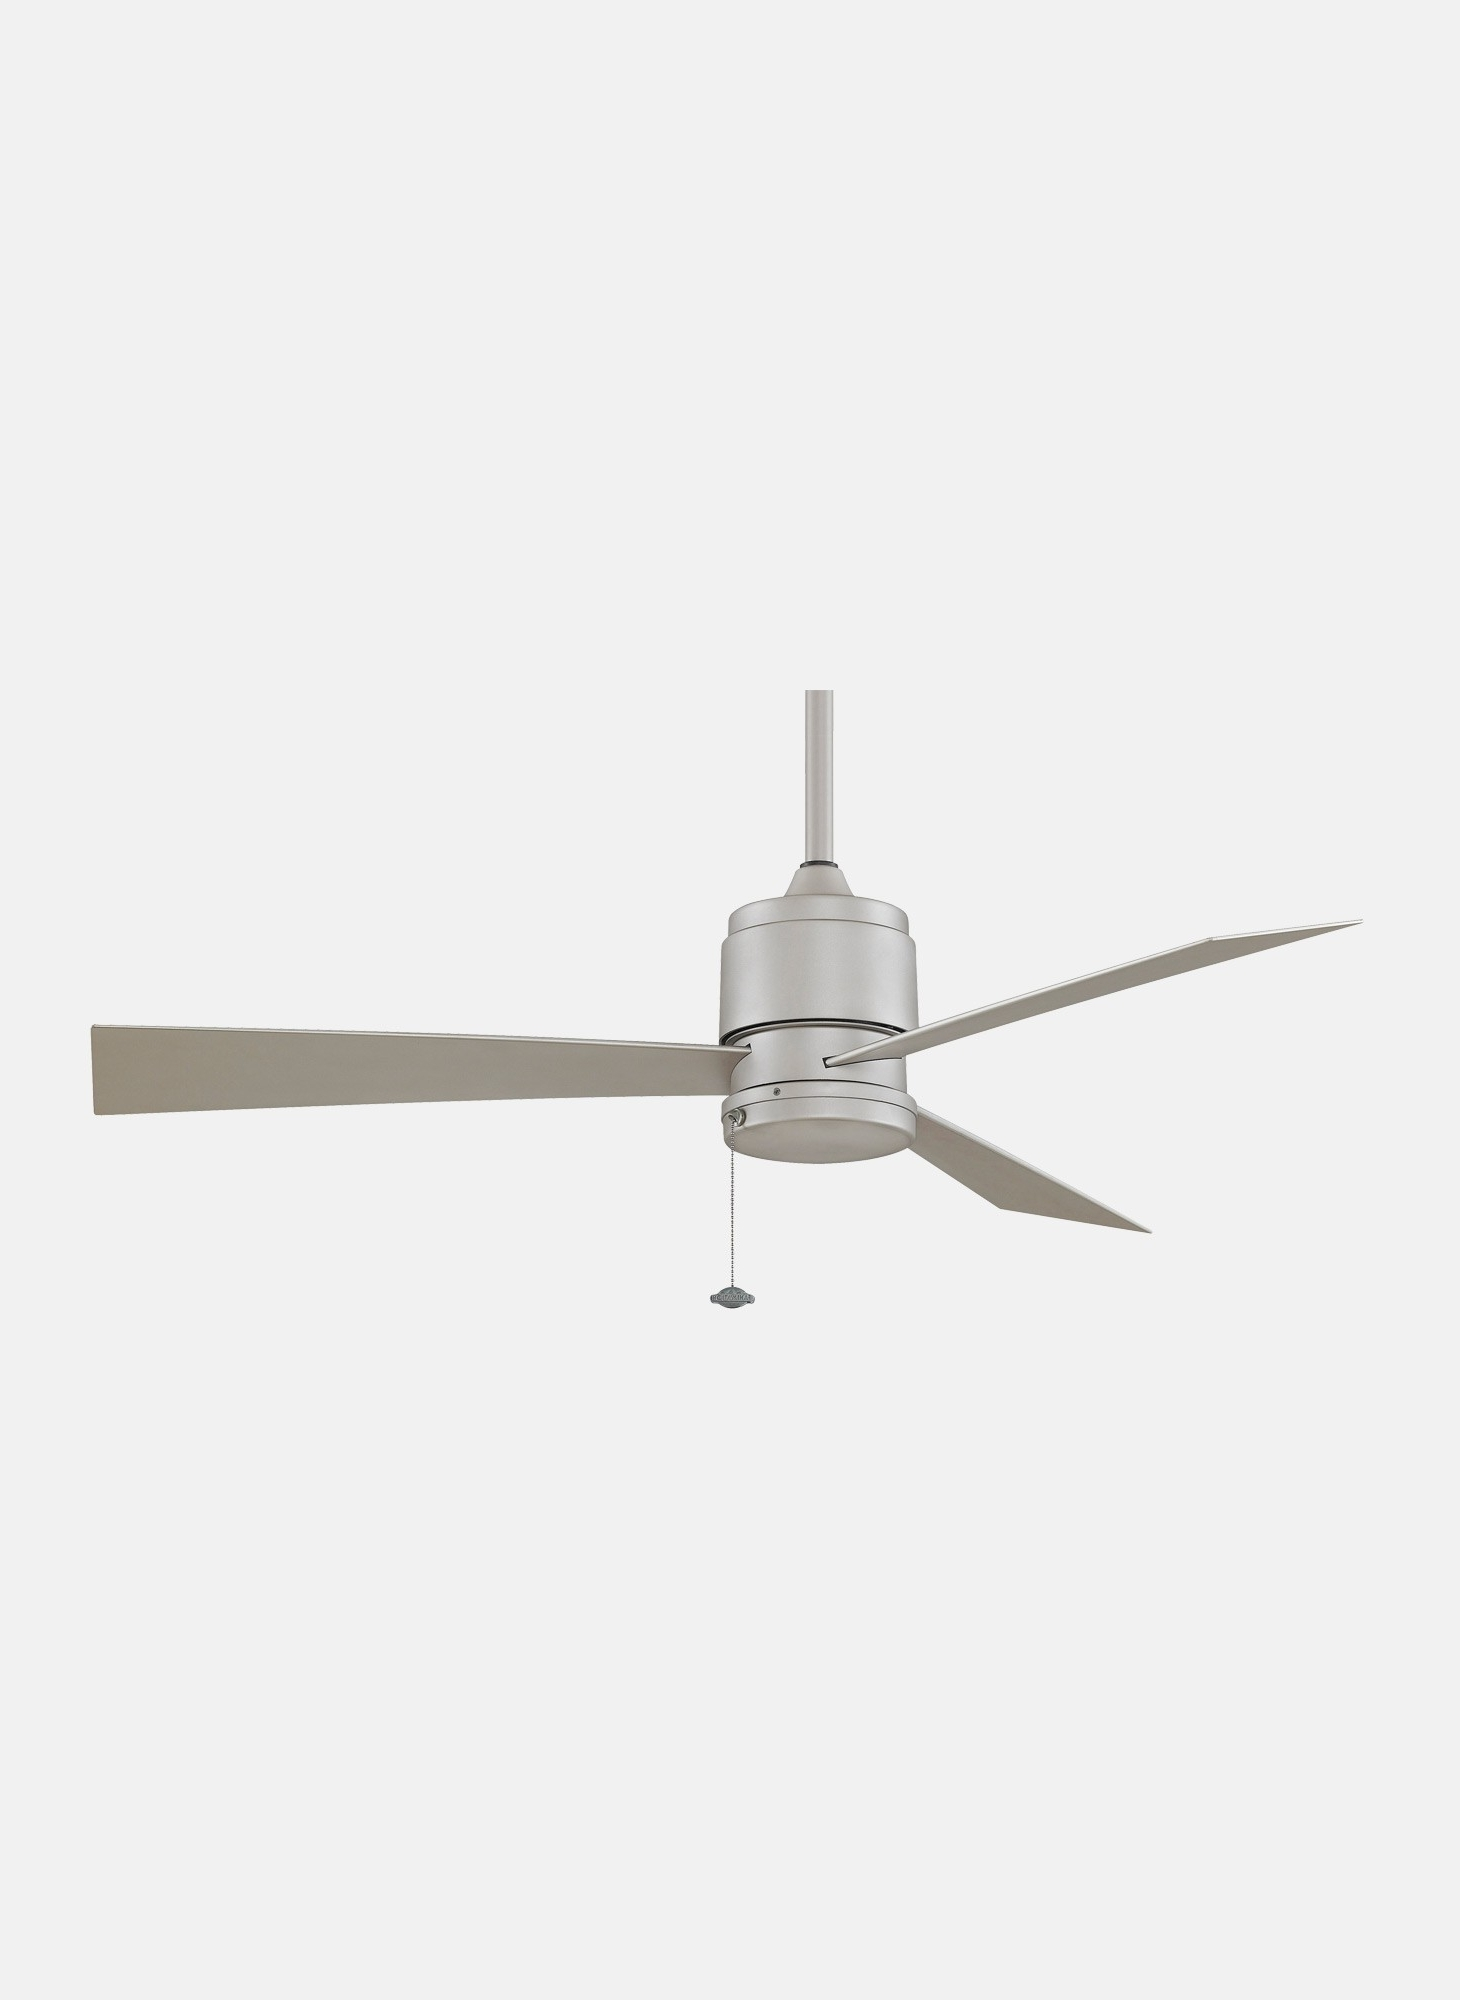 Rust Proof Outdoor Ceiling Fans Pertaining To Recent Zonix Wet – Wet Rated – Fans (View 15 of 20)